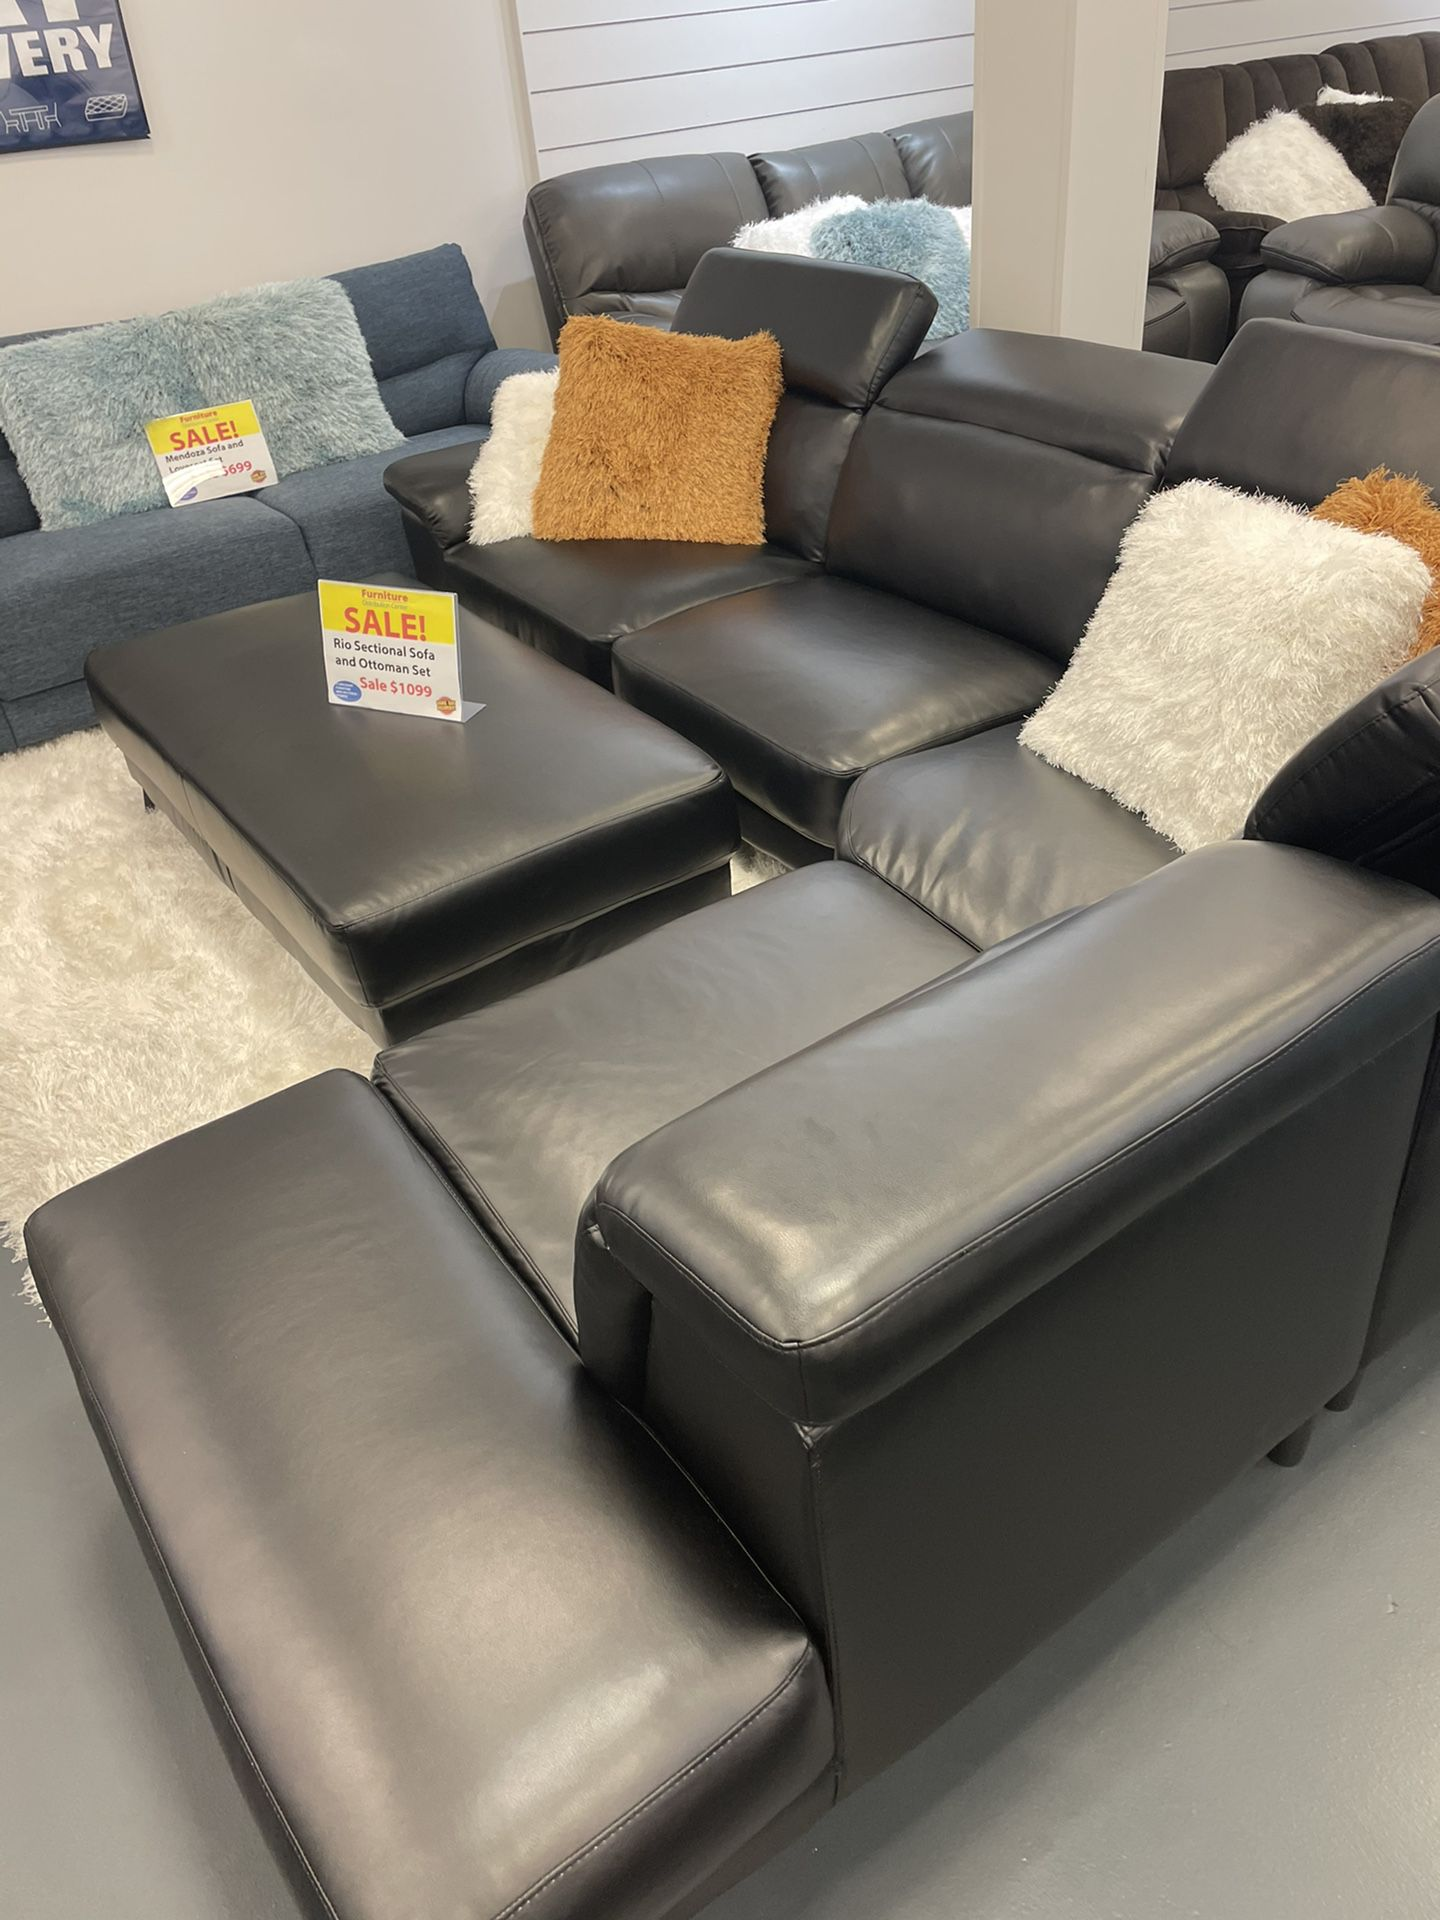 BLACK RIO! ALSO IN WHITE! WITH OTTOMAN! BRAND NEW! DELIVERY TODAY! 12mo NO INTEREST FINANCING! DELIVERY TODAY! NO CREDIT NEEDED FINANCING!